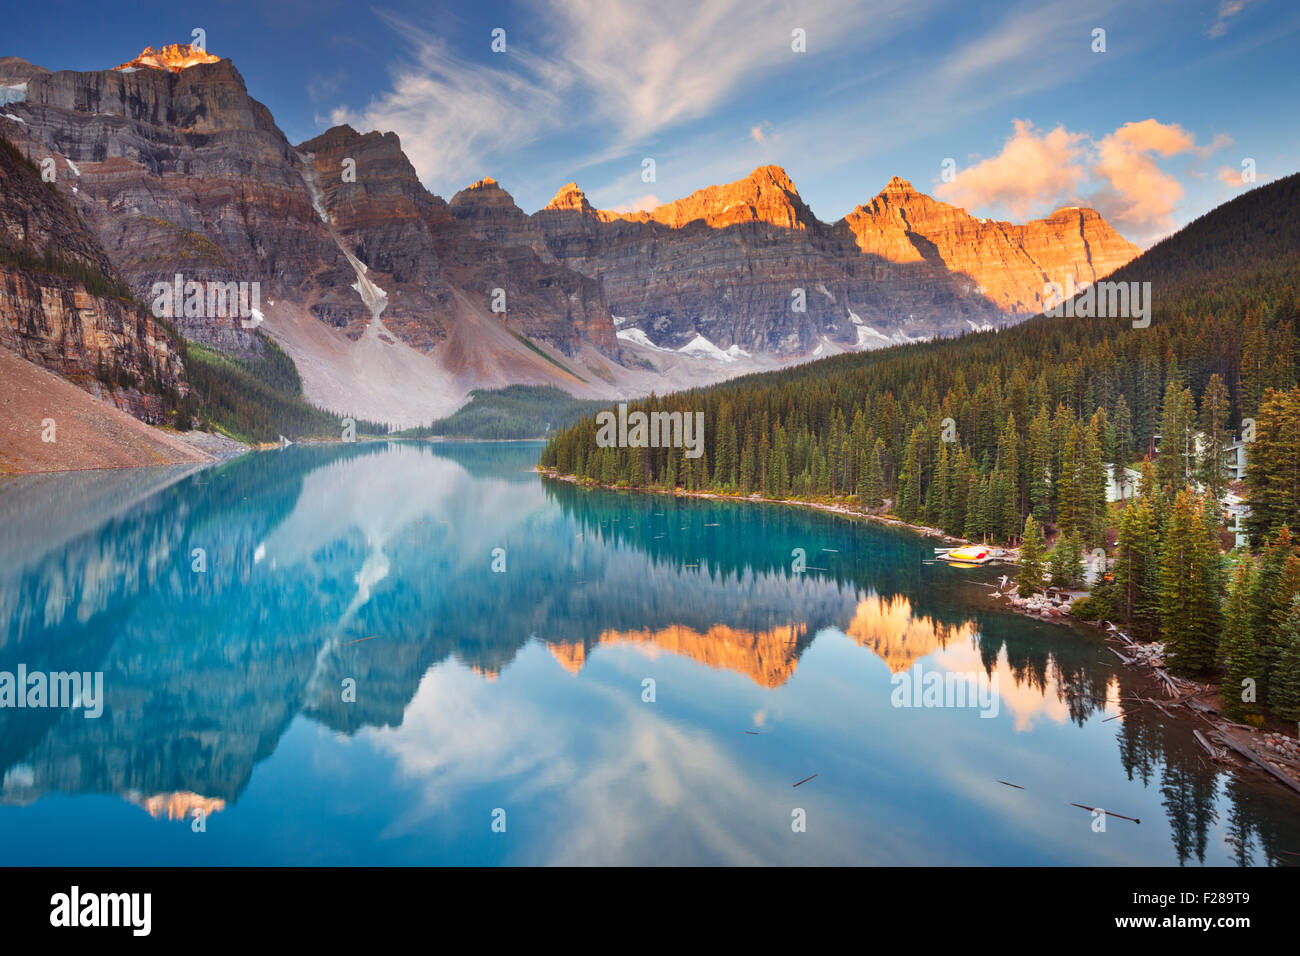 Beautiful Moraine Lake in Banff National Park, Canada. Photographed at sunrise. - Stock Image